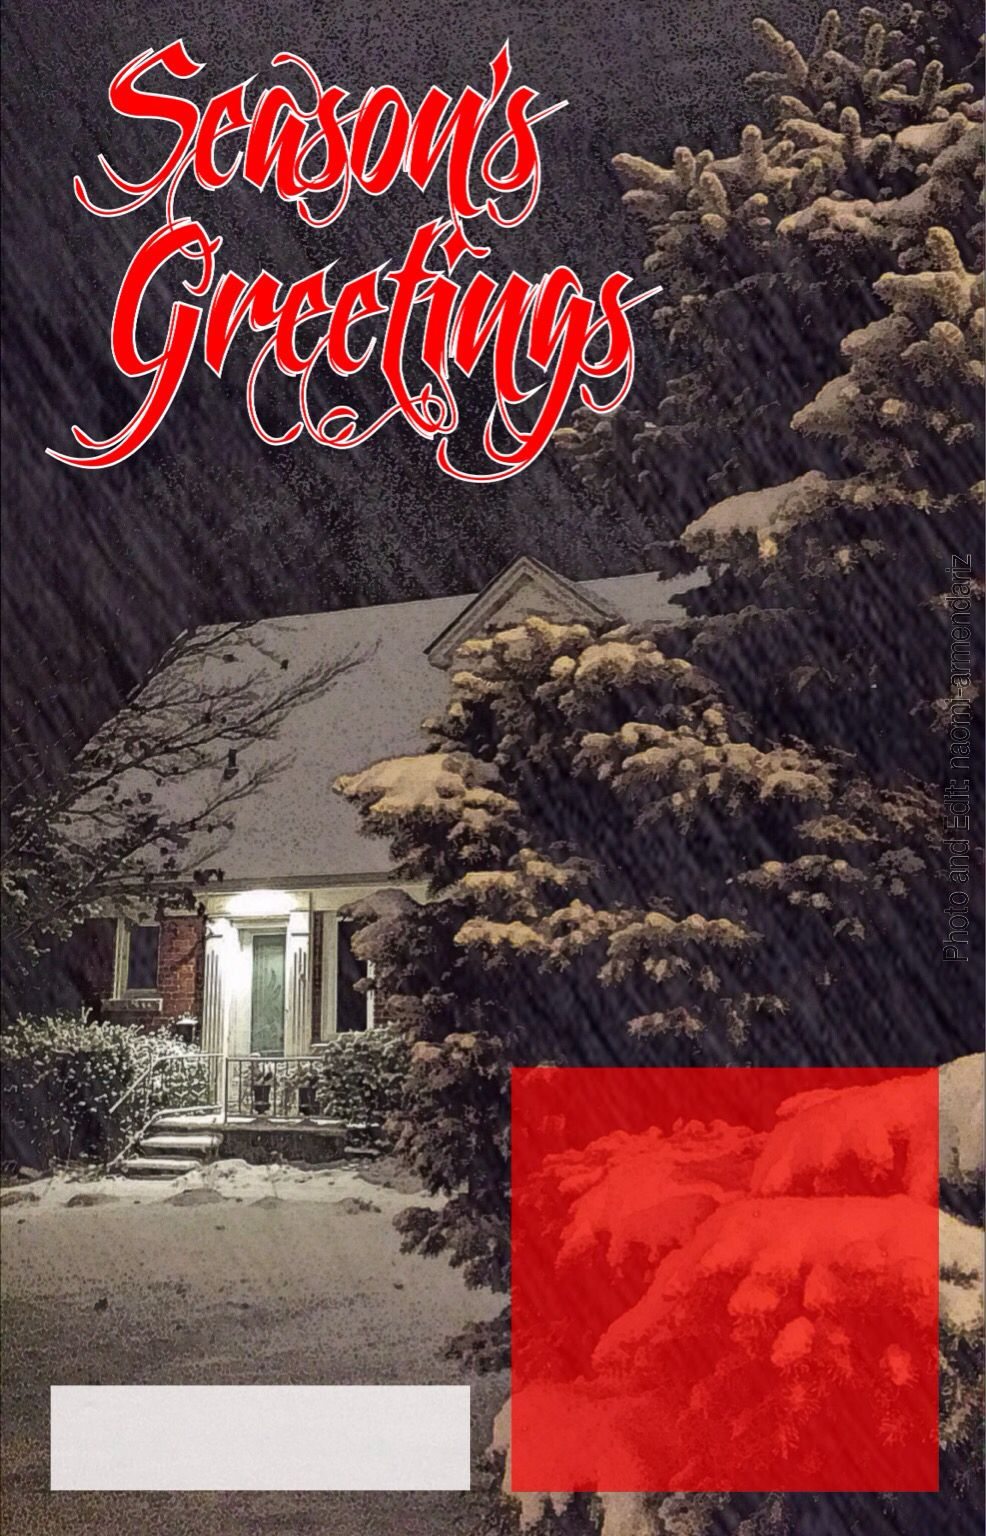 Seasons Greetings Holiday Card Template Using A Photo Editing App